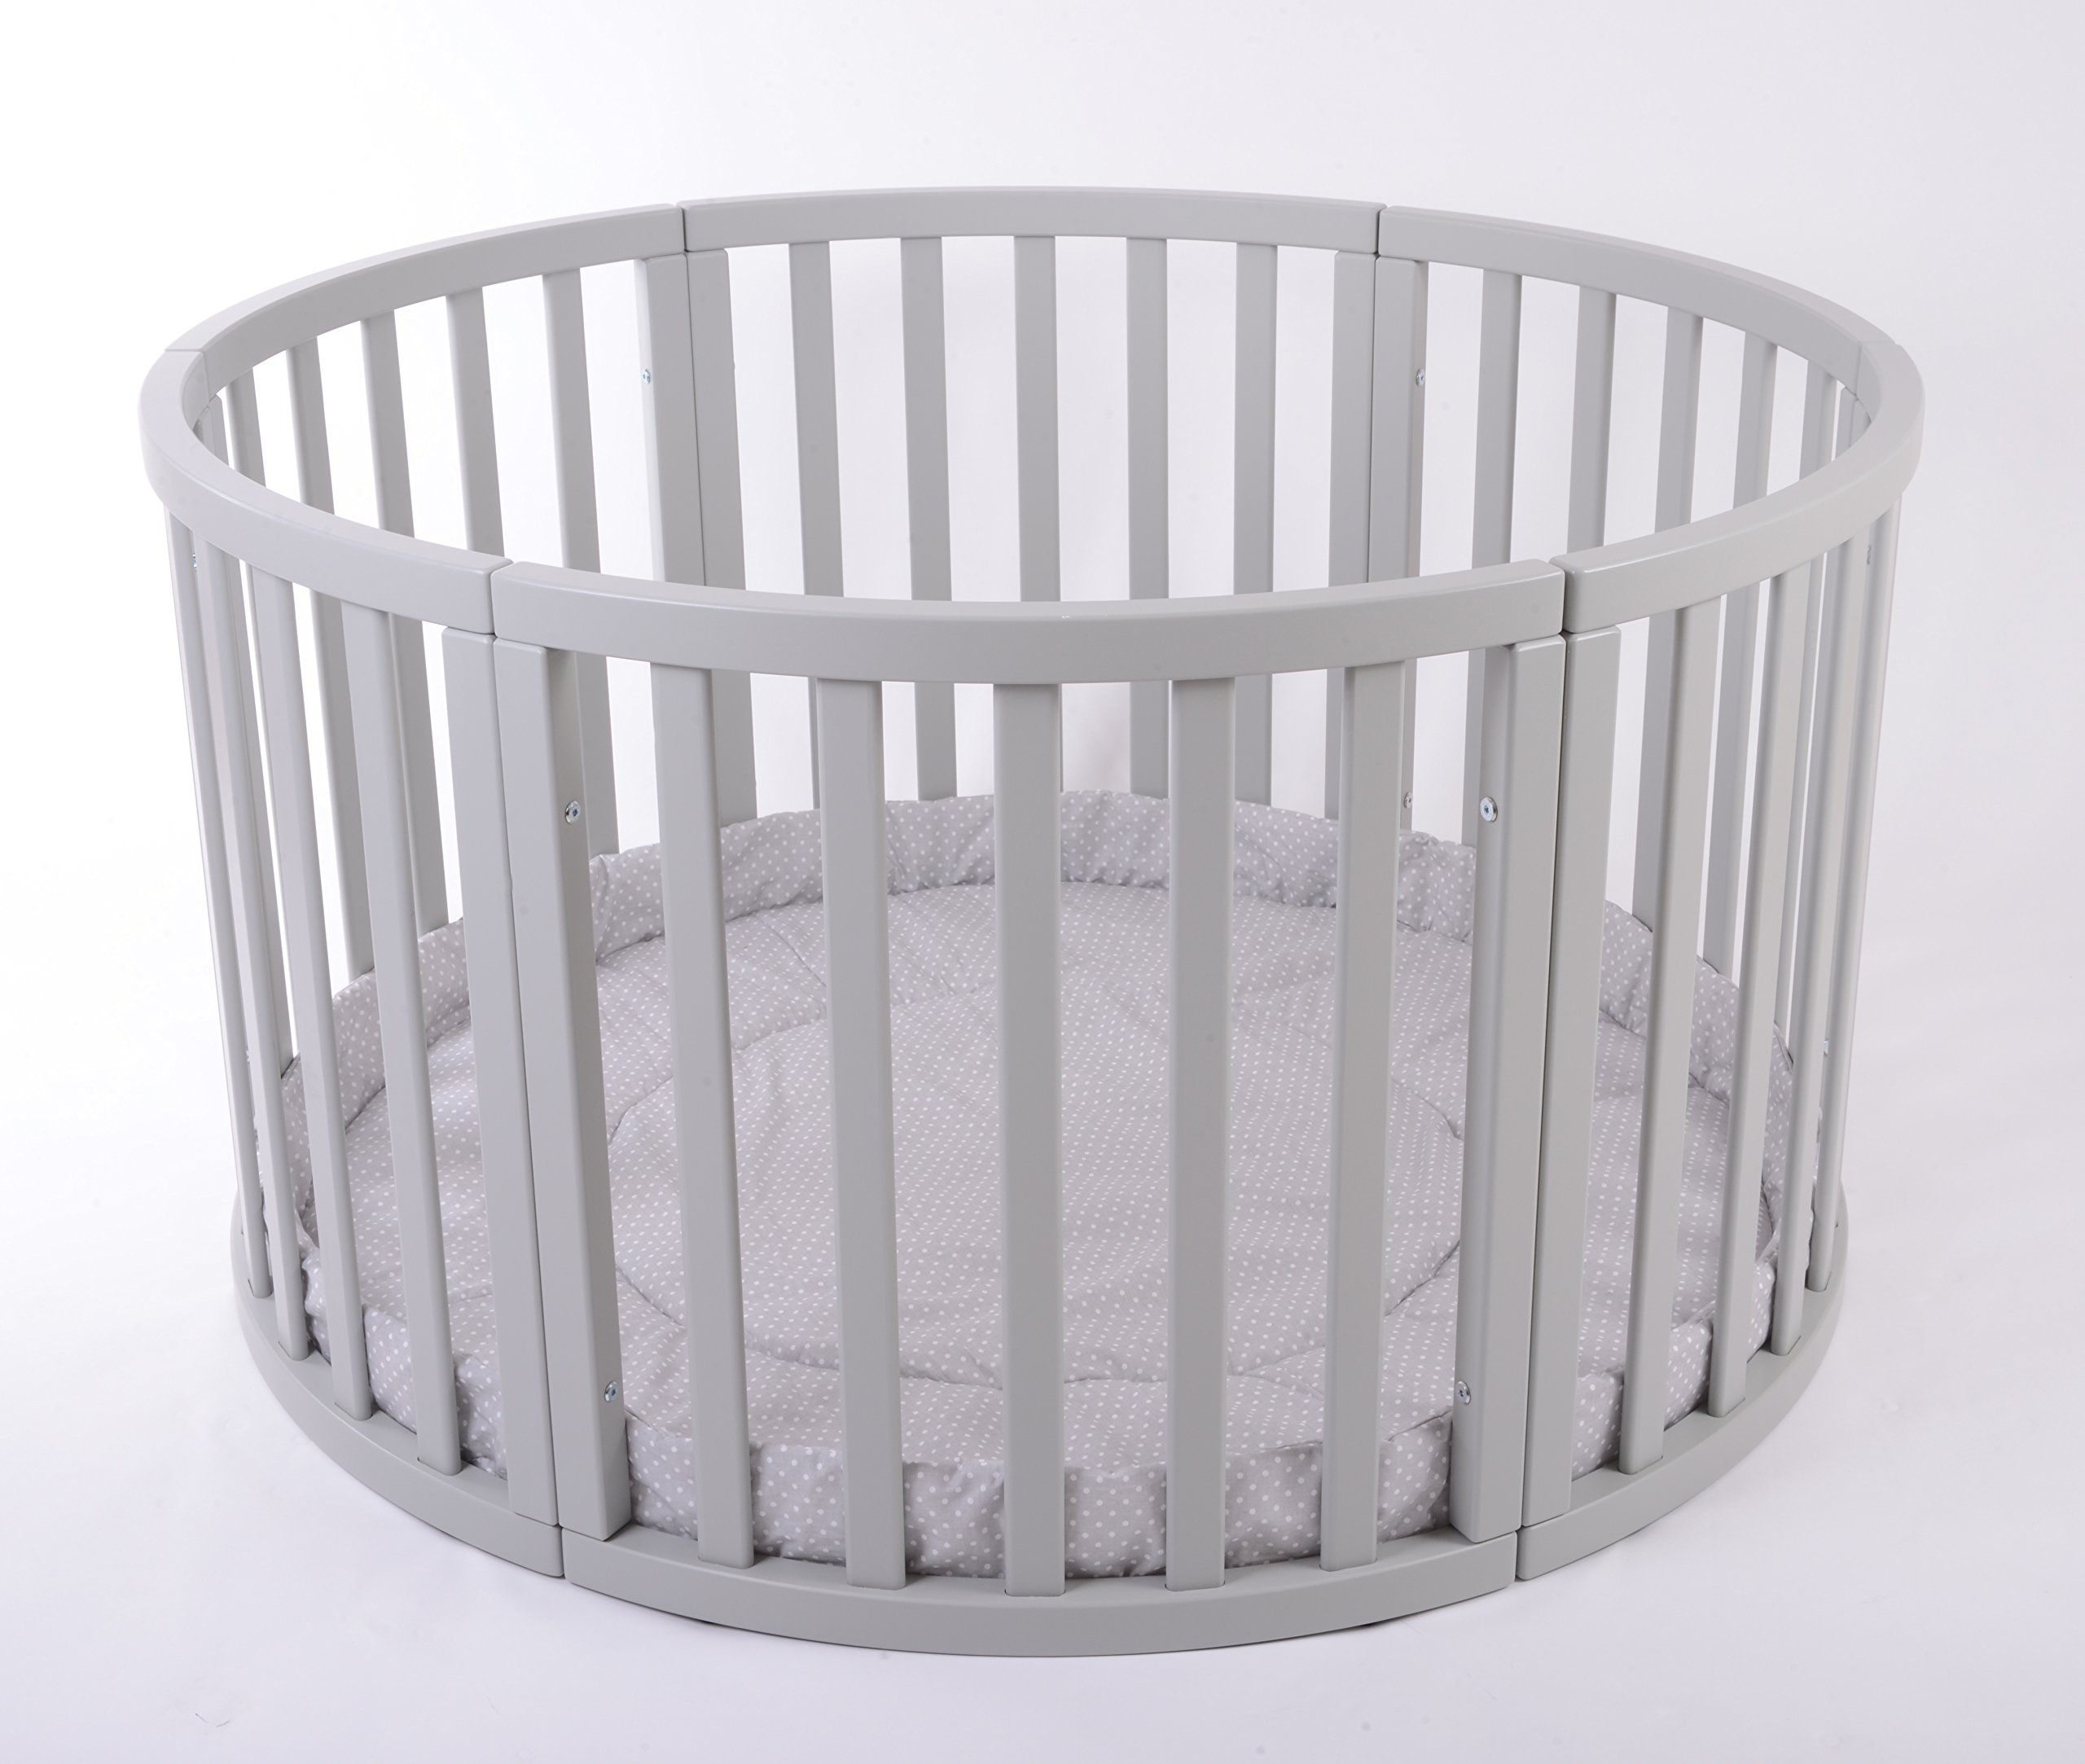 MJmark Round PLAYPEN APOLLO QUATTRO VERY LARGE Wooden play pen with play-mat SALE SALE (Grey Polka Dots) MJmark Height 70 cm approx; Ø 120cm including Playmat made from solid hard wood (Birch) 1